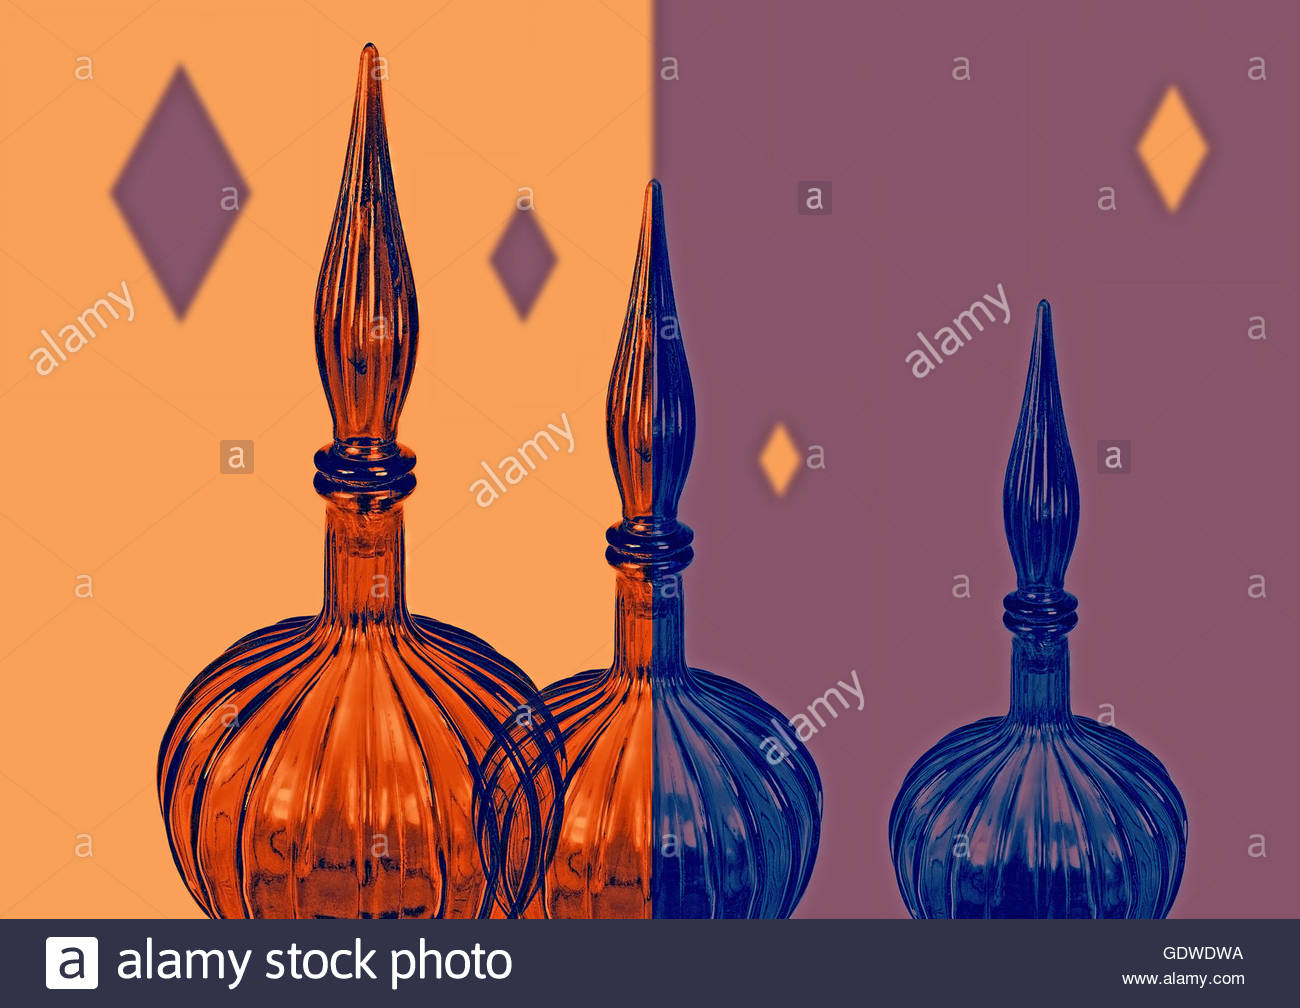 Retro vintage glass vases eastern ornamental with mid century background - Stock Image